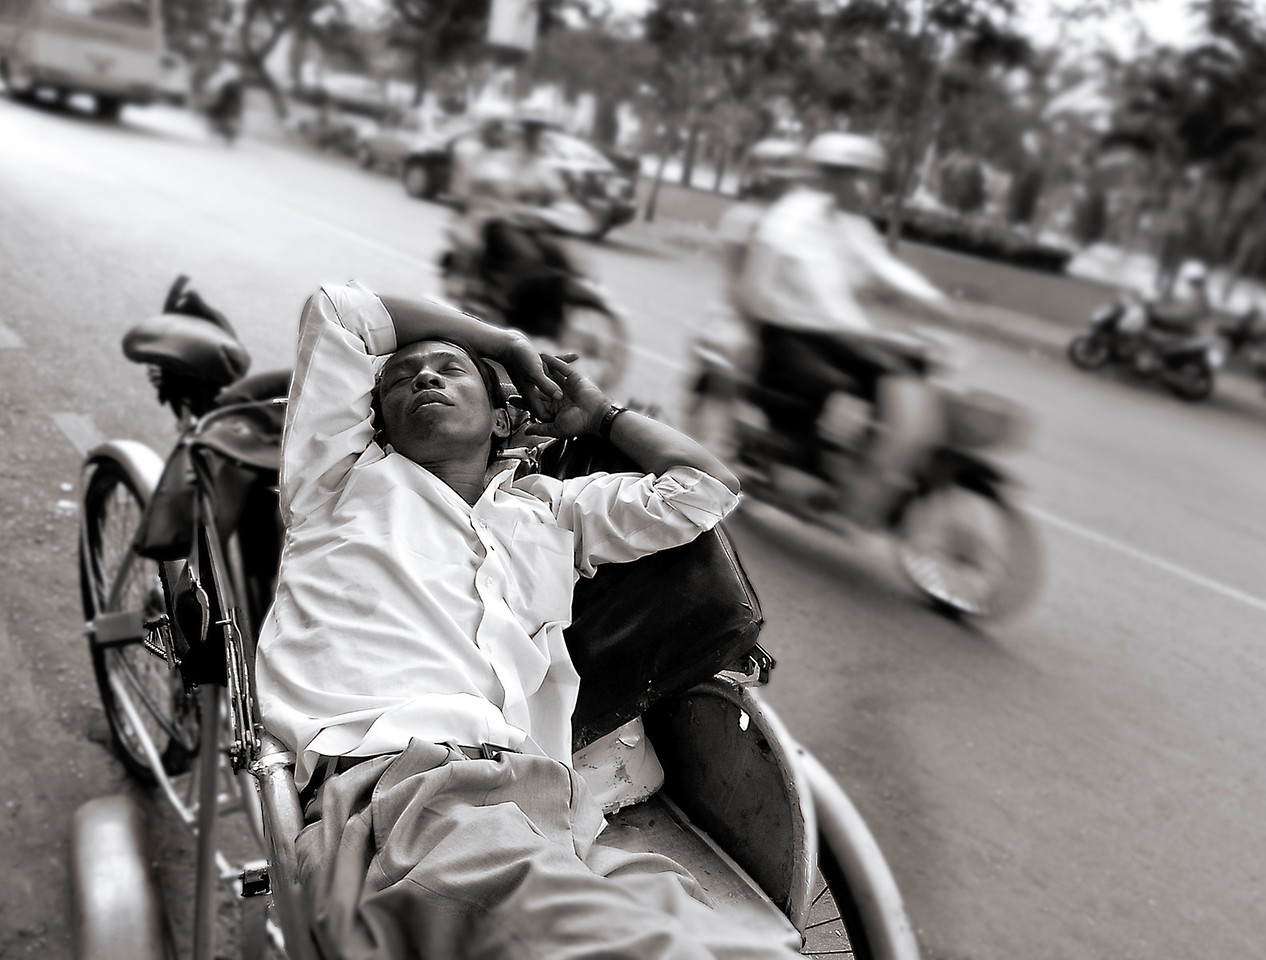 Rickshaw driver takes an afternoon nap in a busy Saigon Street. <br /> <br /> Saigon, Vietnam, 2008